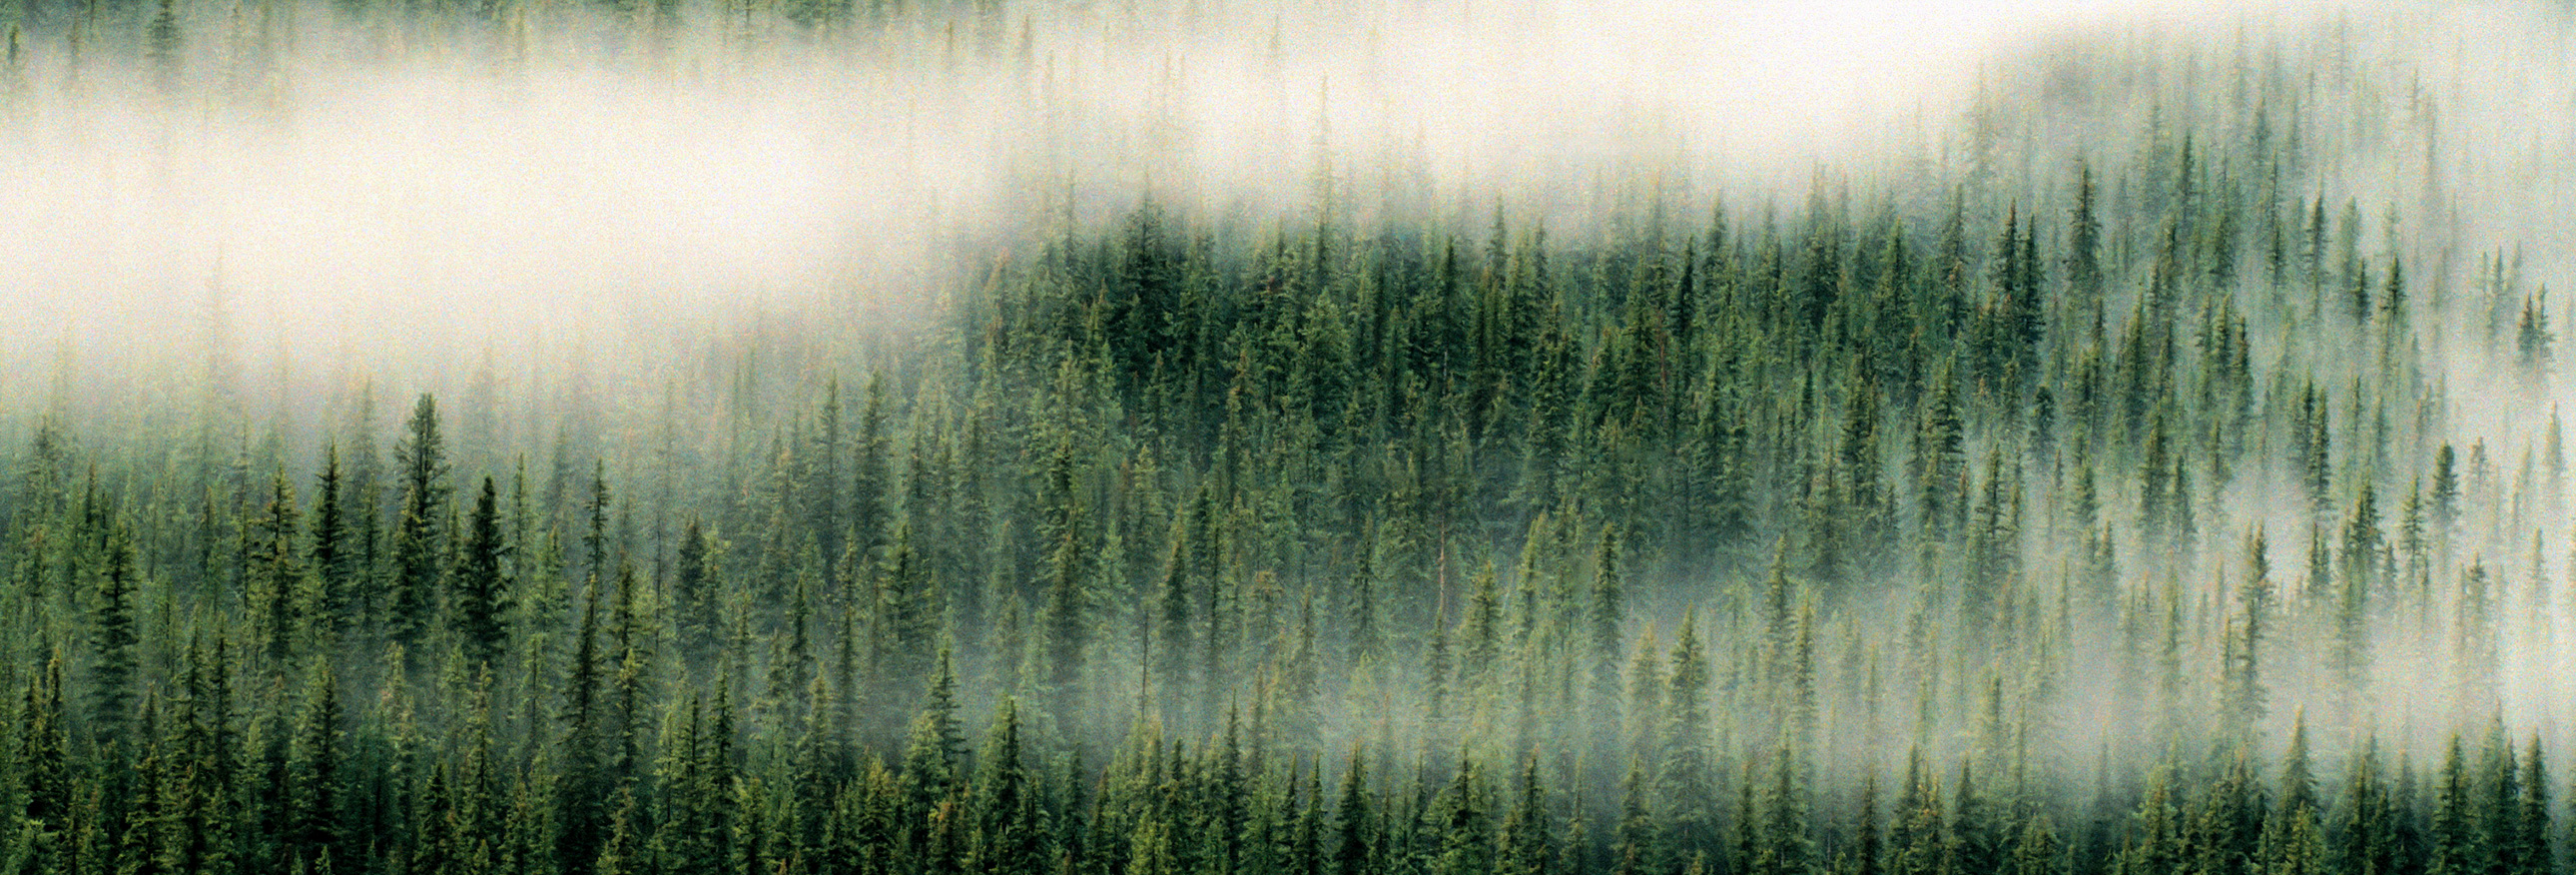 aerial view of forest in fog